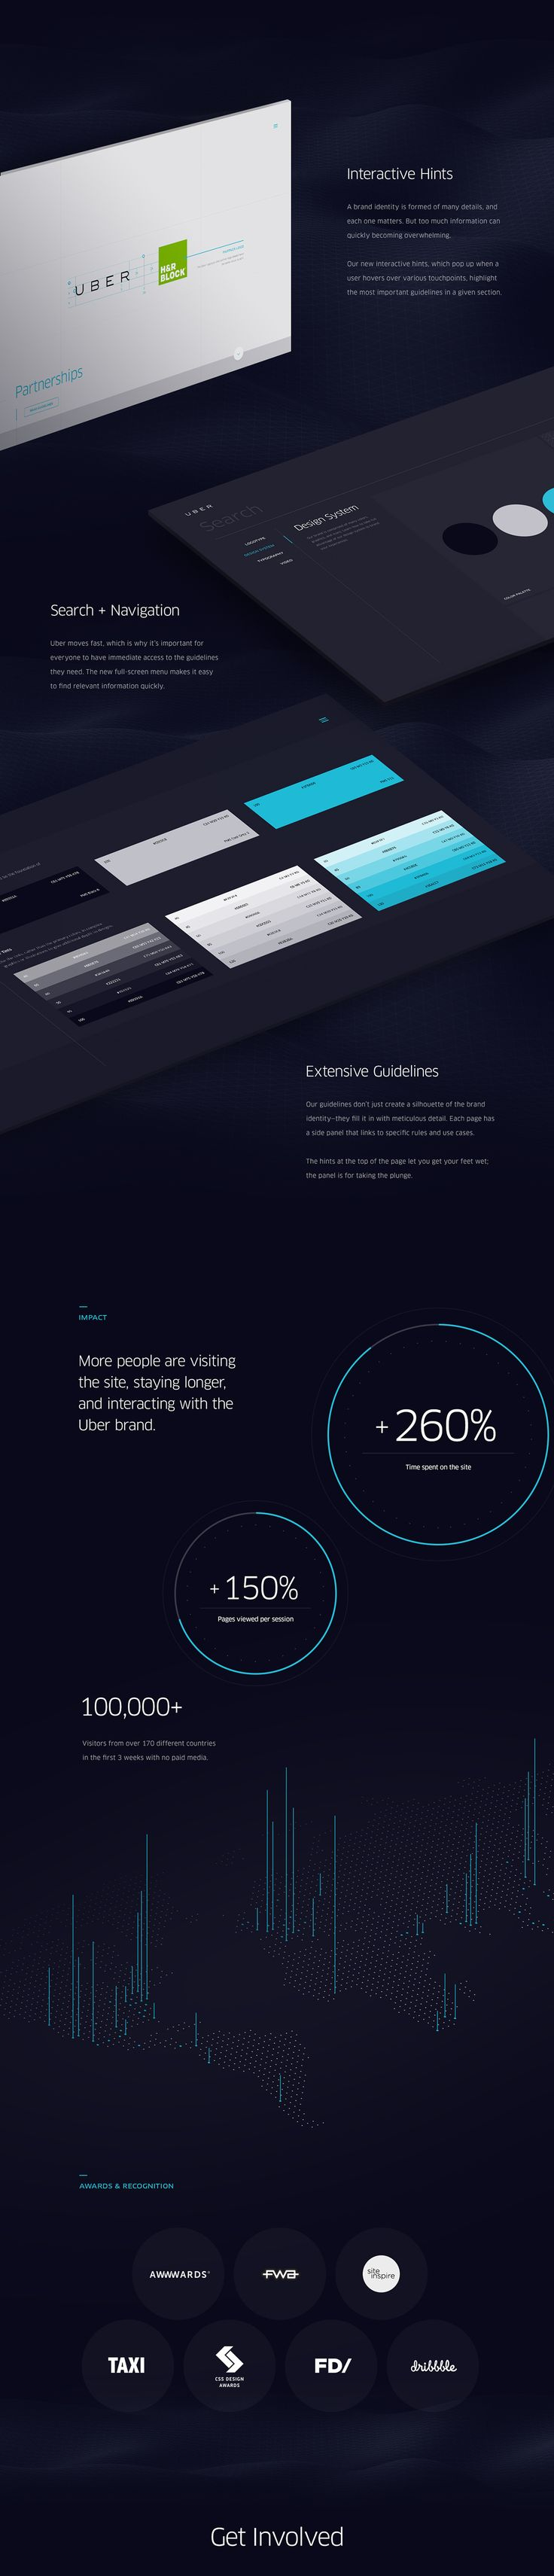 Uber Brand Guidelines on Behance